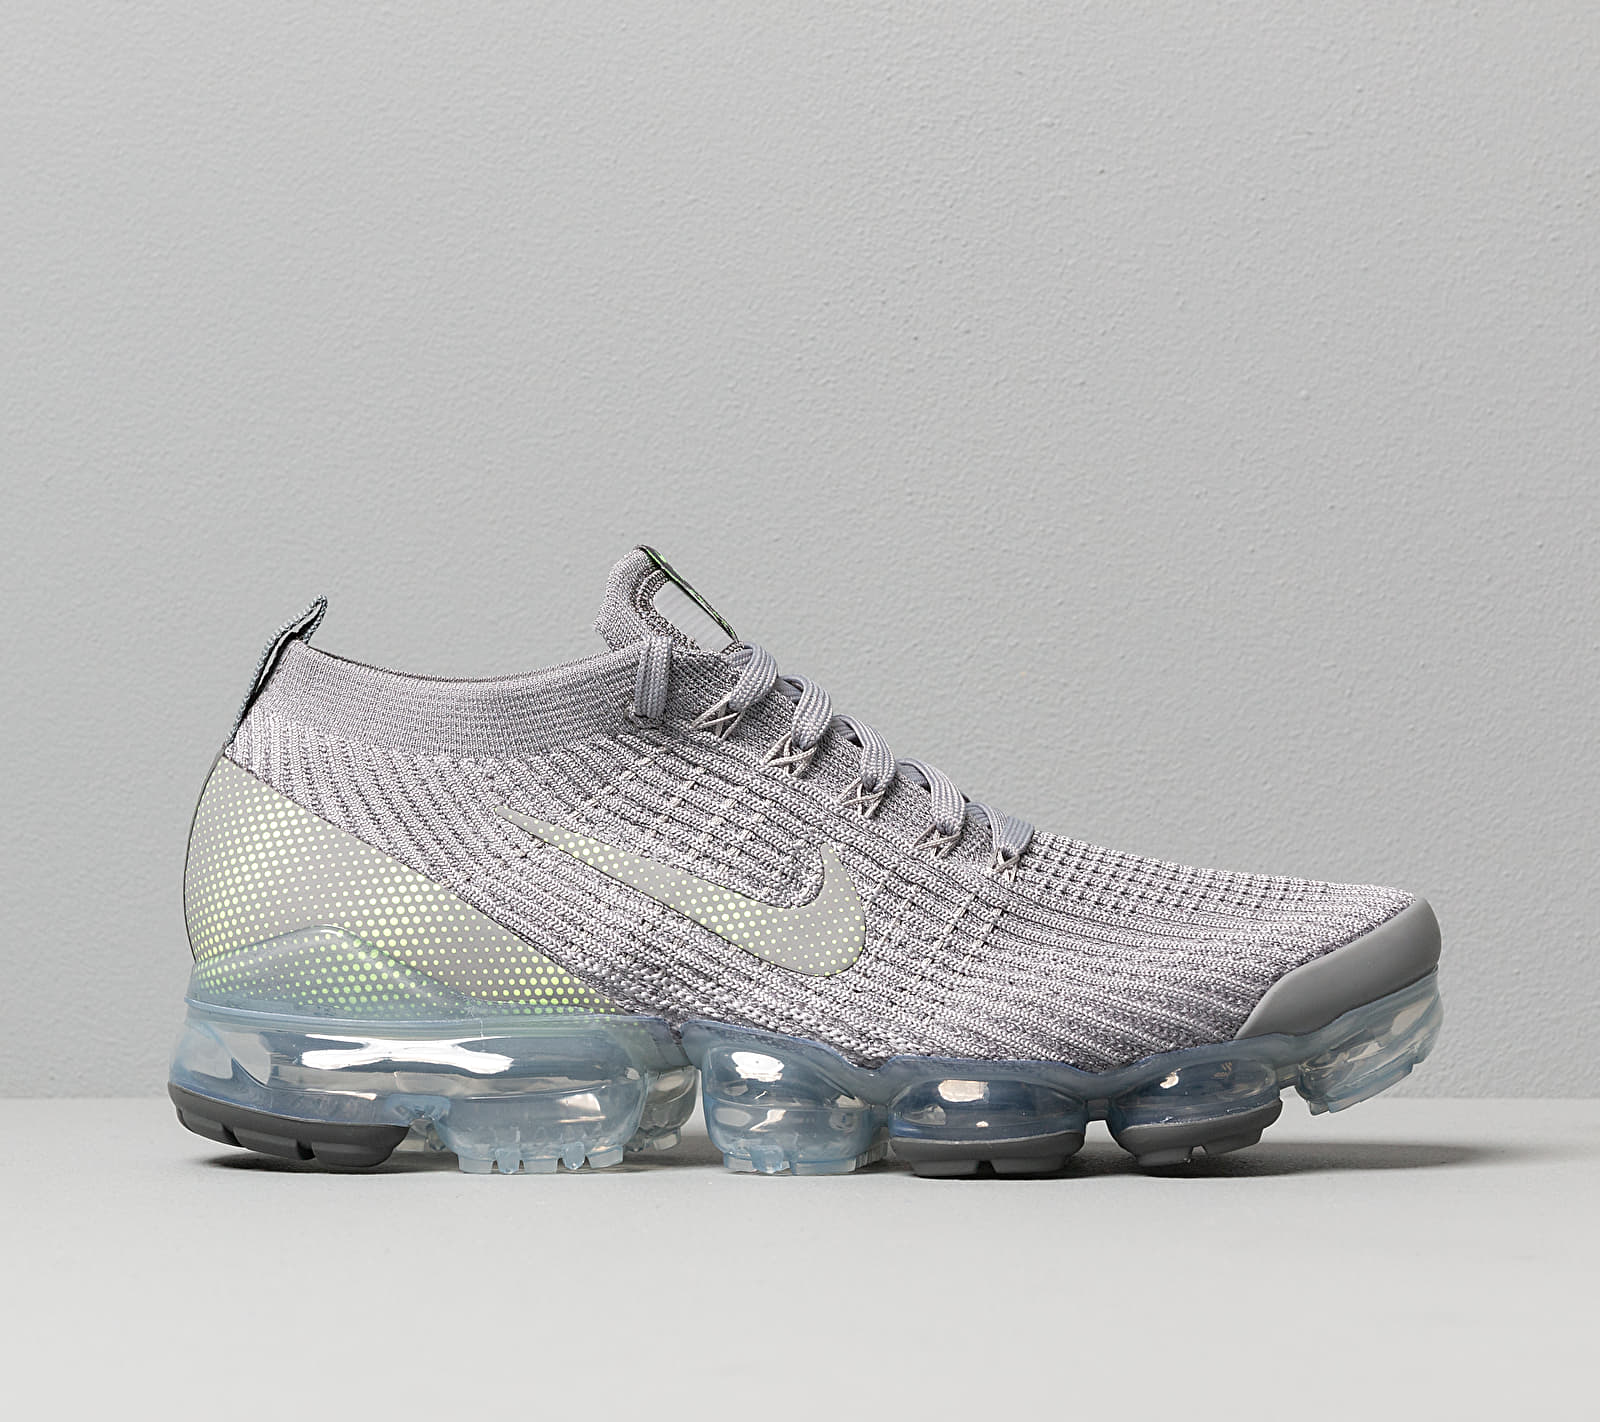 Nike Air Vapormax Flyknit 3 Particle Grey/ Ghost Green-Iron Grey, Gray